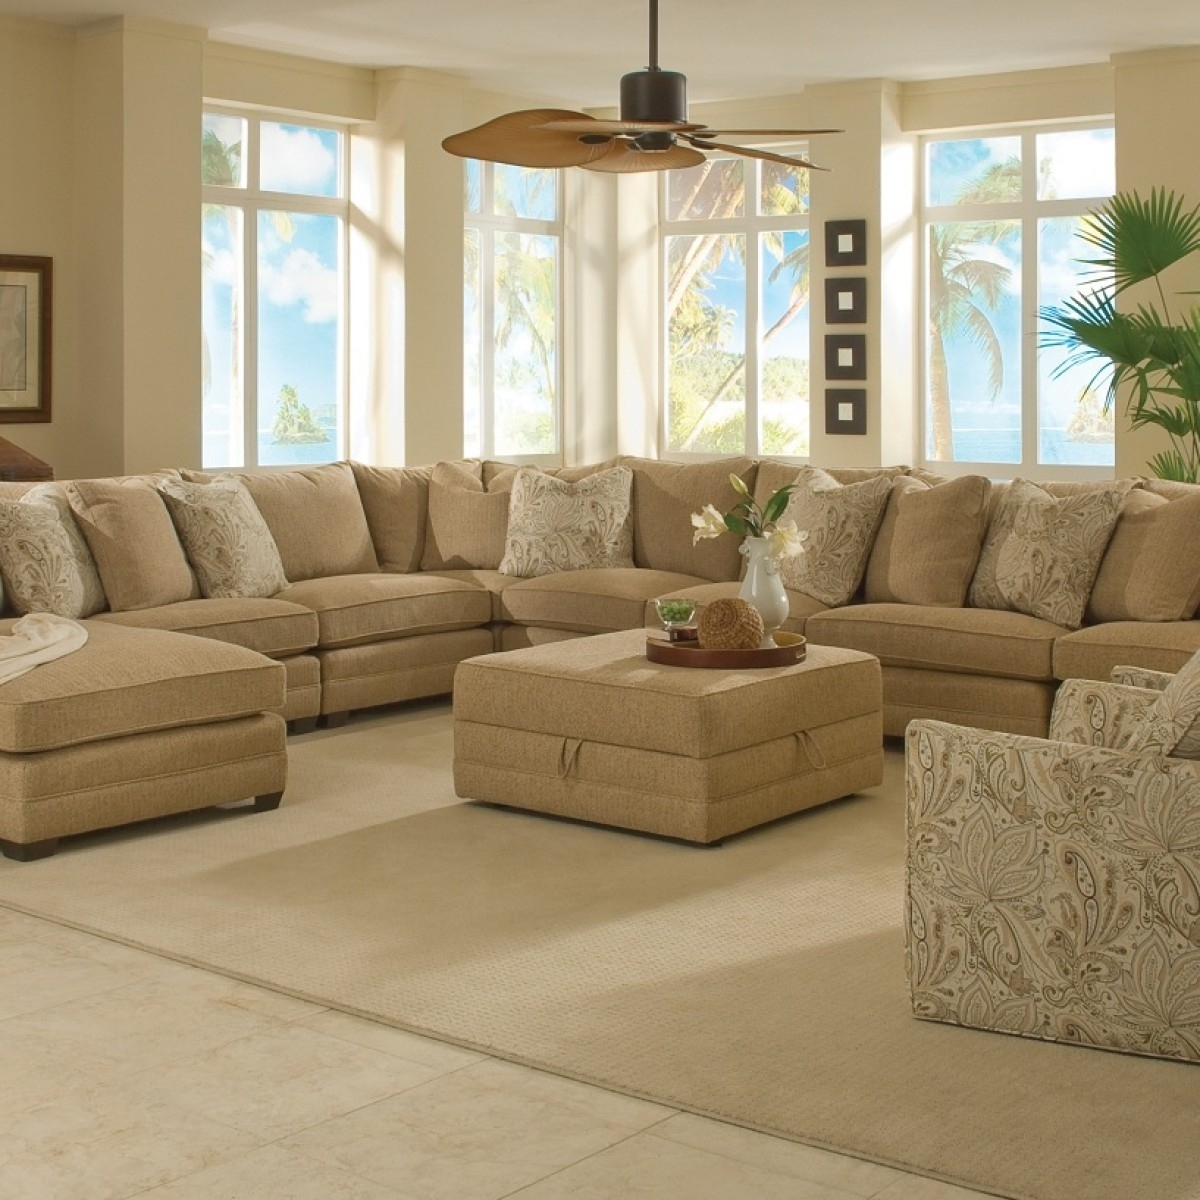 Factors To Consider Before Buying An Extra Large Sectional Sofa In Most Recently Released Sectionals With Oversized Ottoman (View 13 of 15)